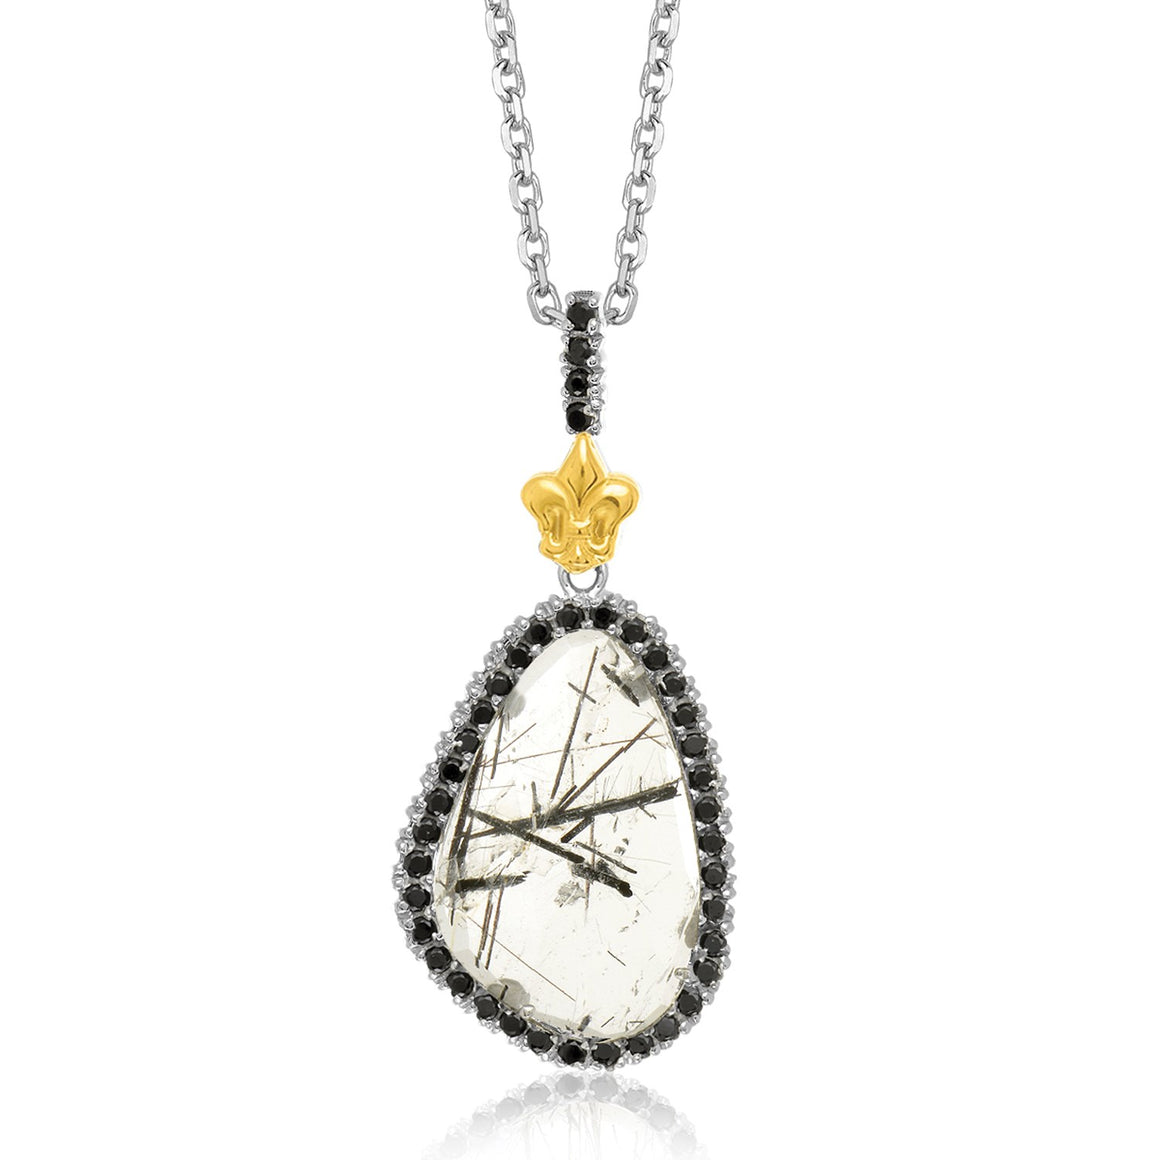 18k Yellow Gold & Sterling Silver Style Rutilated Quartz Pendant